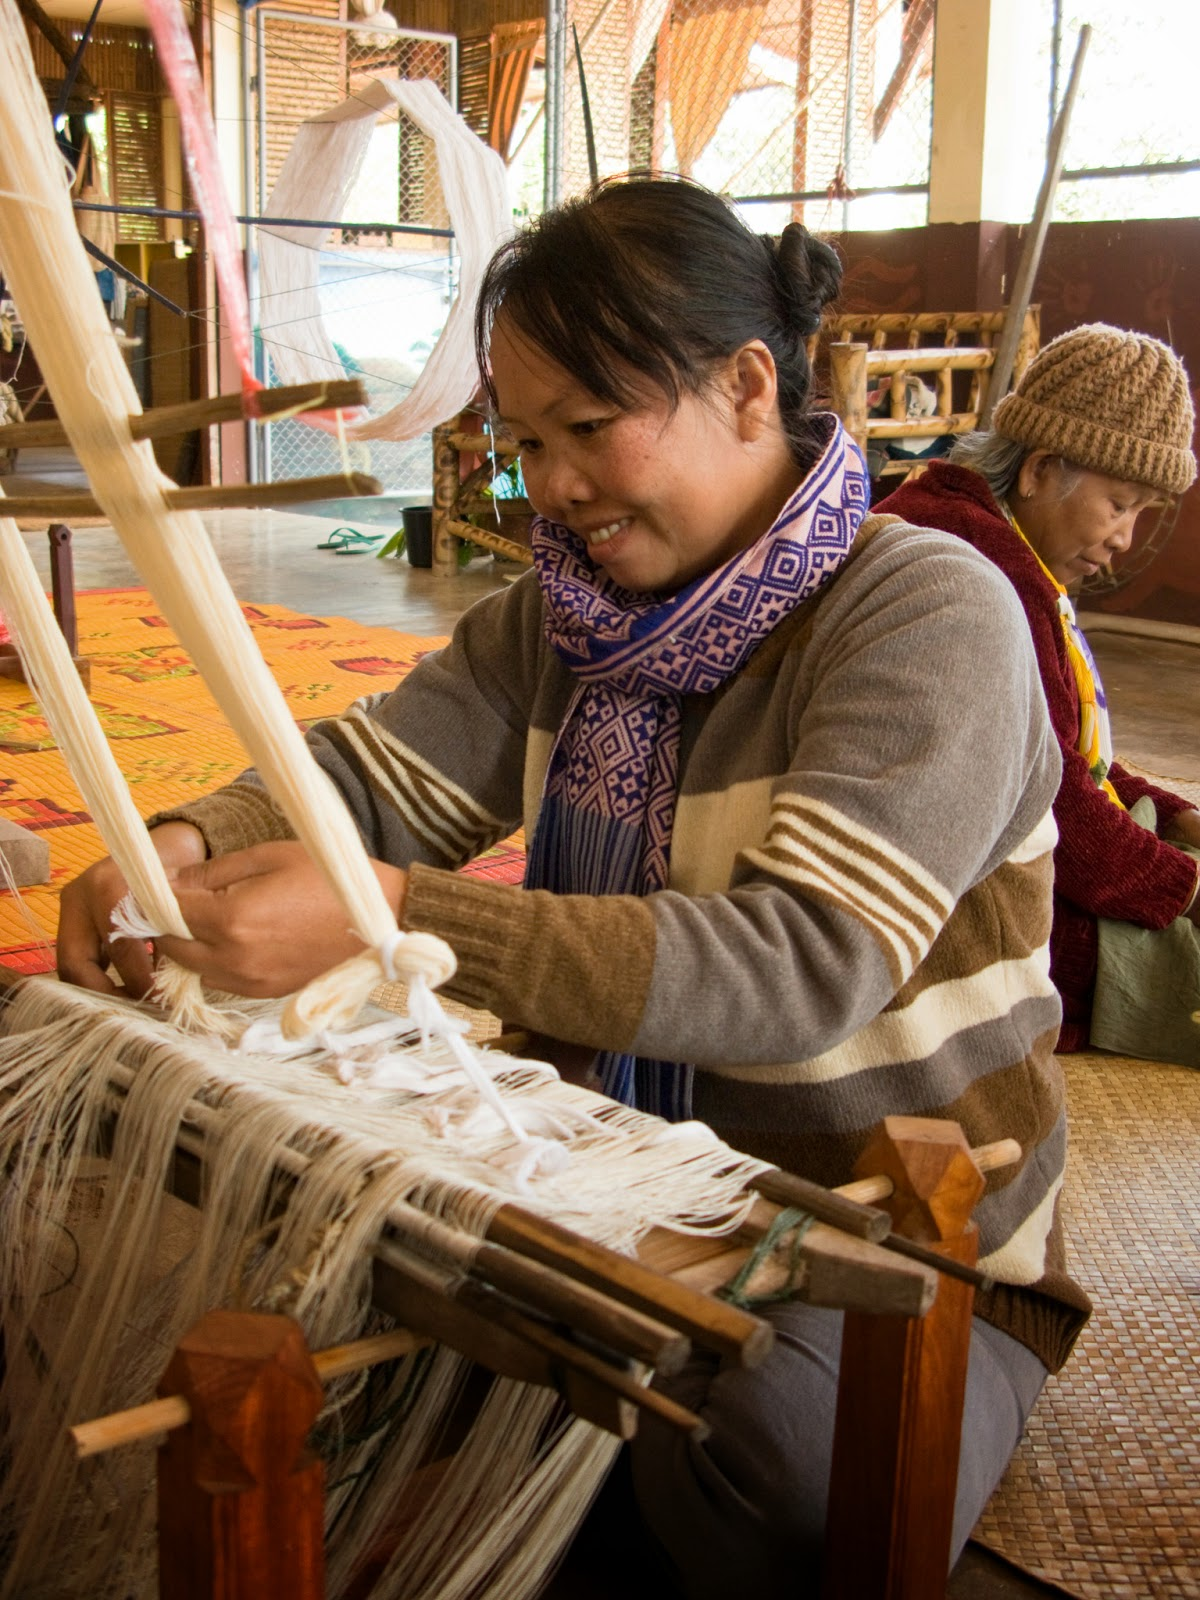 Cotton weavers, like silk weavers, usually work at home, but belonging to a weaving group allows Nuu Pun to receive training and other support.